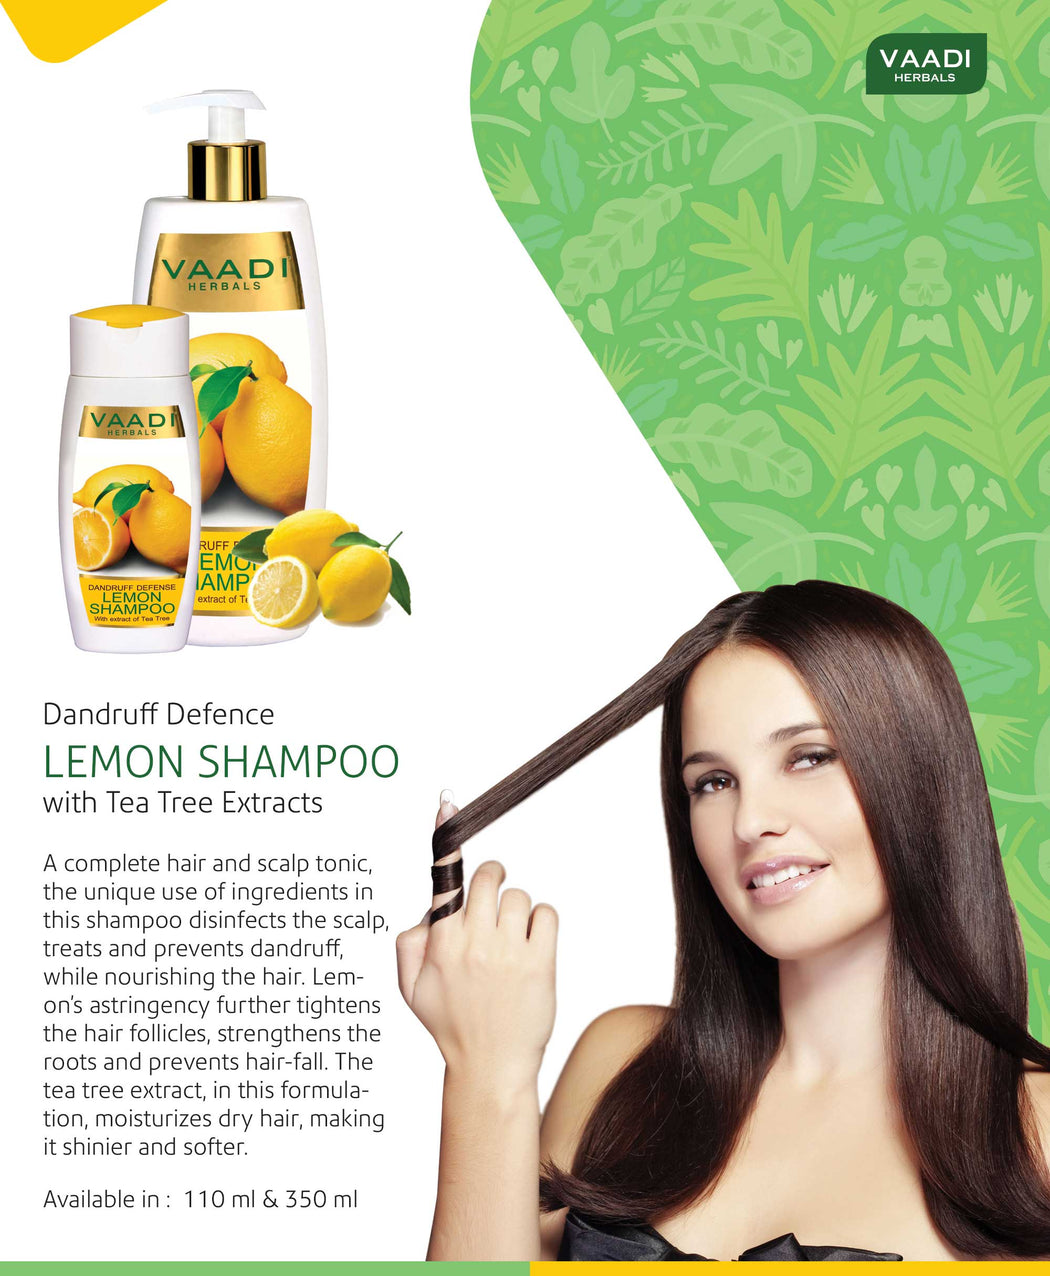 Dandruff Defense Organic Lemon Shampoo with Tea Tree Extract (3 x 350 ml/ 12 fl oz)